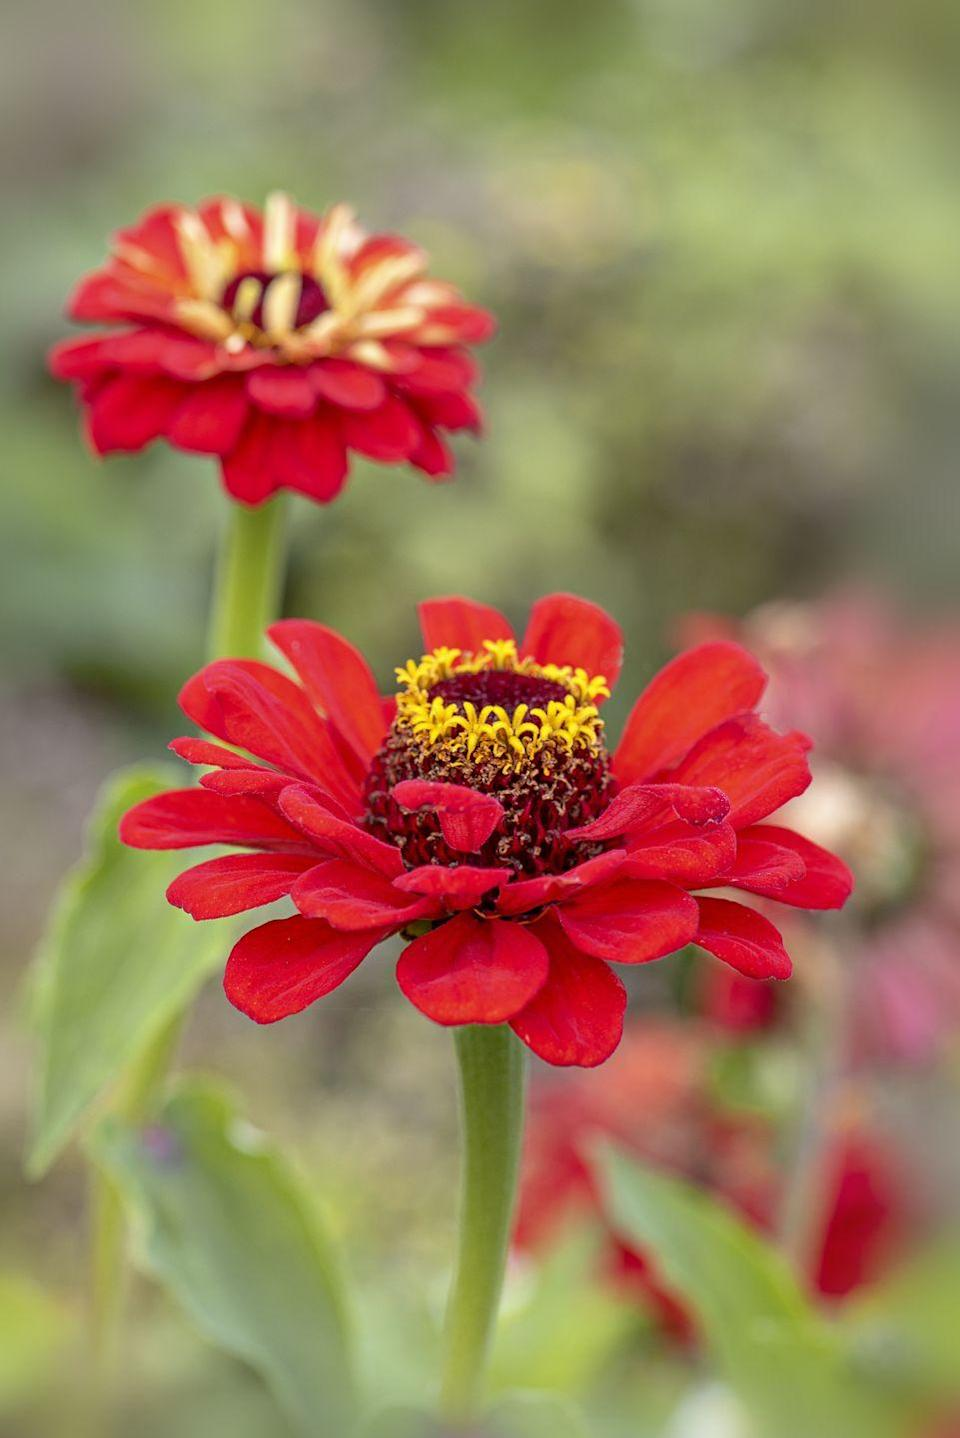 """<p>Heavy bloomers, zinnias are easy to start from seed after the last frost. While these full-sun lovers are annuals, they effortlessly reseed from year to year.<br><br> <a class=""""link rapid-noclick-resp"""" href=""""https://www.amazon.com/Zinnia-California-Giant-Flower-Seeds2Go/dp/B07KL175QJ/ref=sr_1_2?tag=syn-yahoo-20&ascsubtag=%5Bartid%7C10050.g.32157369%5Bsrc%7Cyahoo-us"""" rel=""""nofollow noopener"""" target=""""_blank"""" data-ylk=""""slk:SHOP NOW"""">SHOP NOW<br></a></p>"""